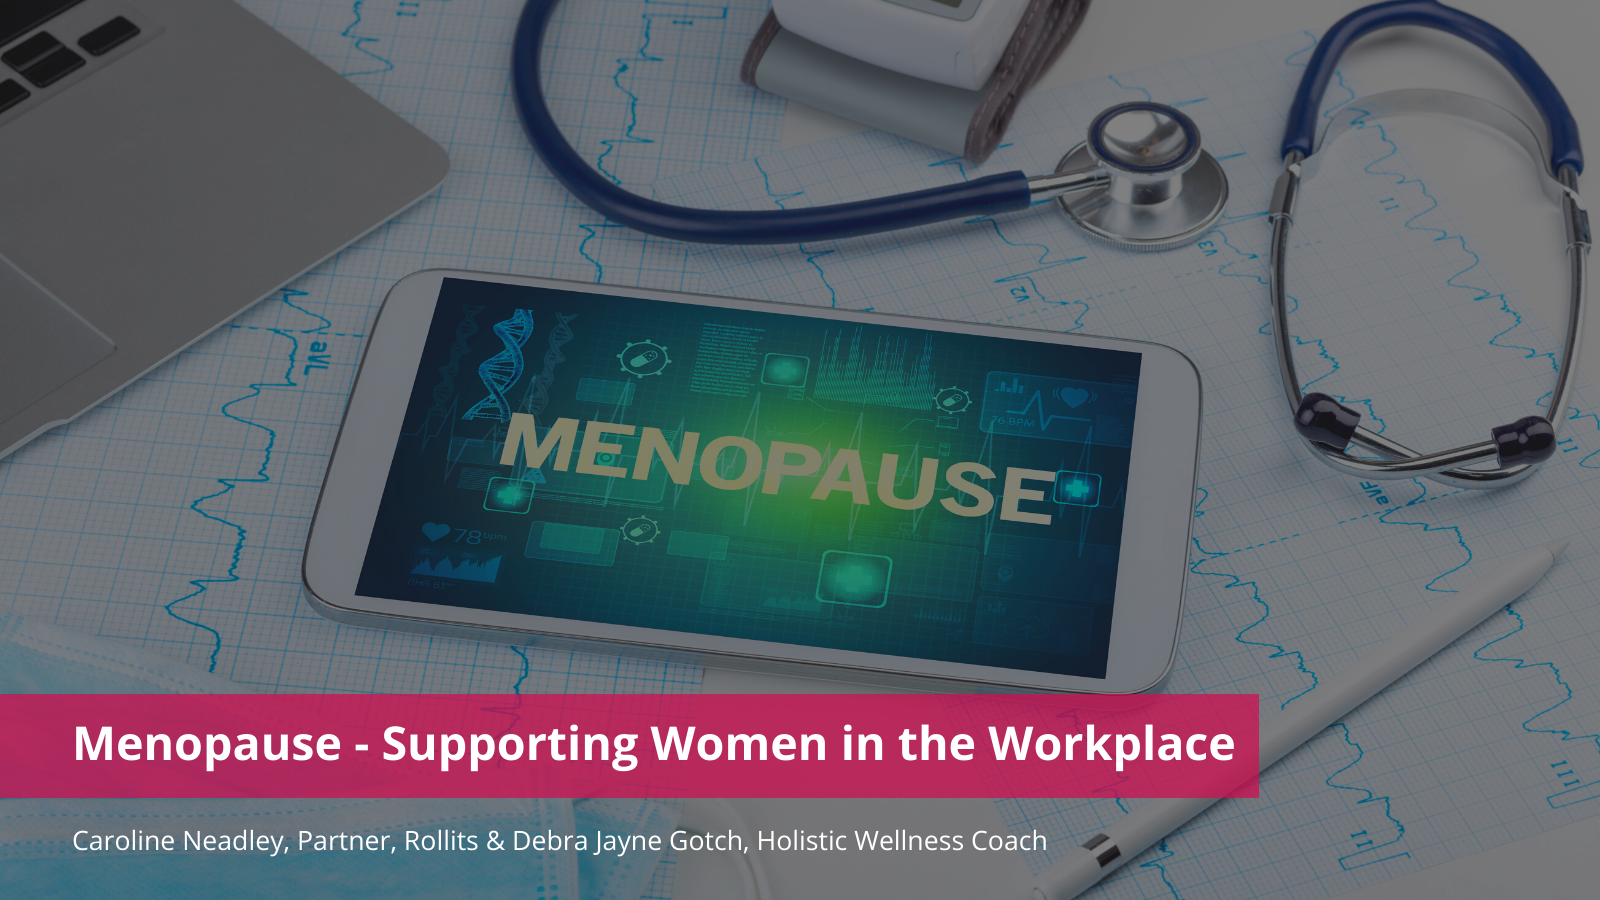 Menopause - Supporting women in the workplace